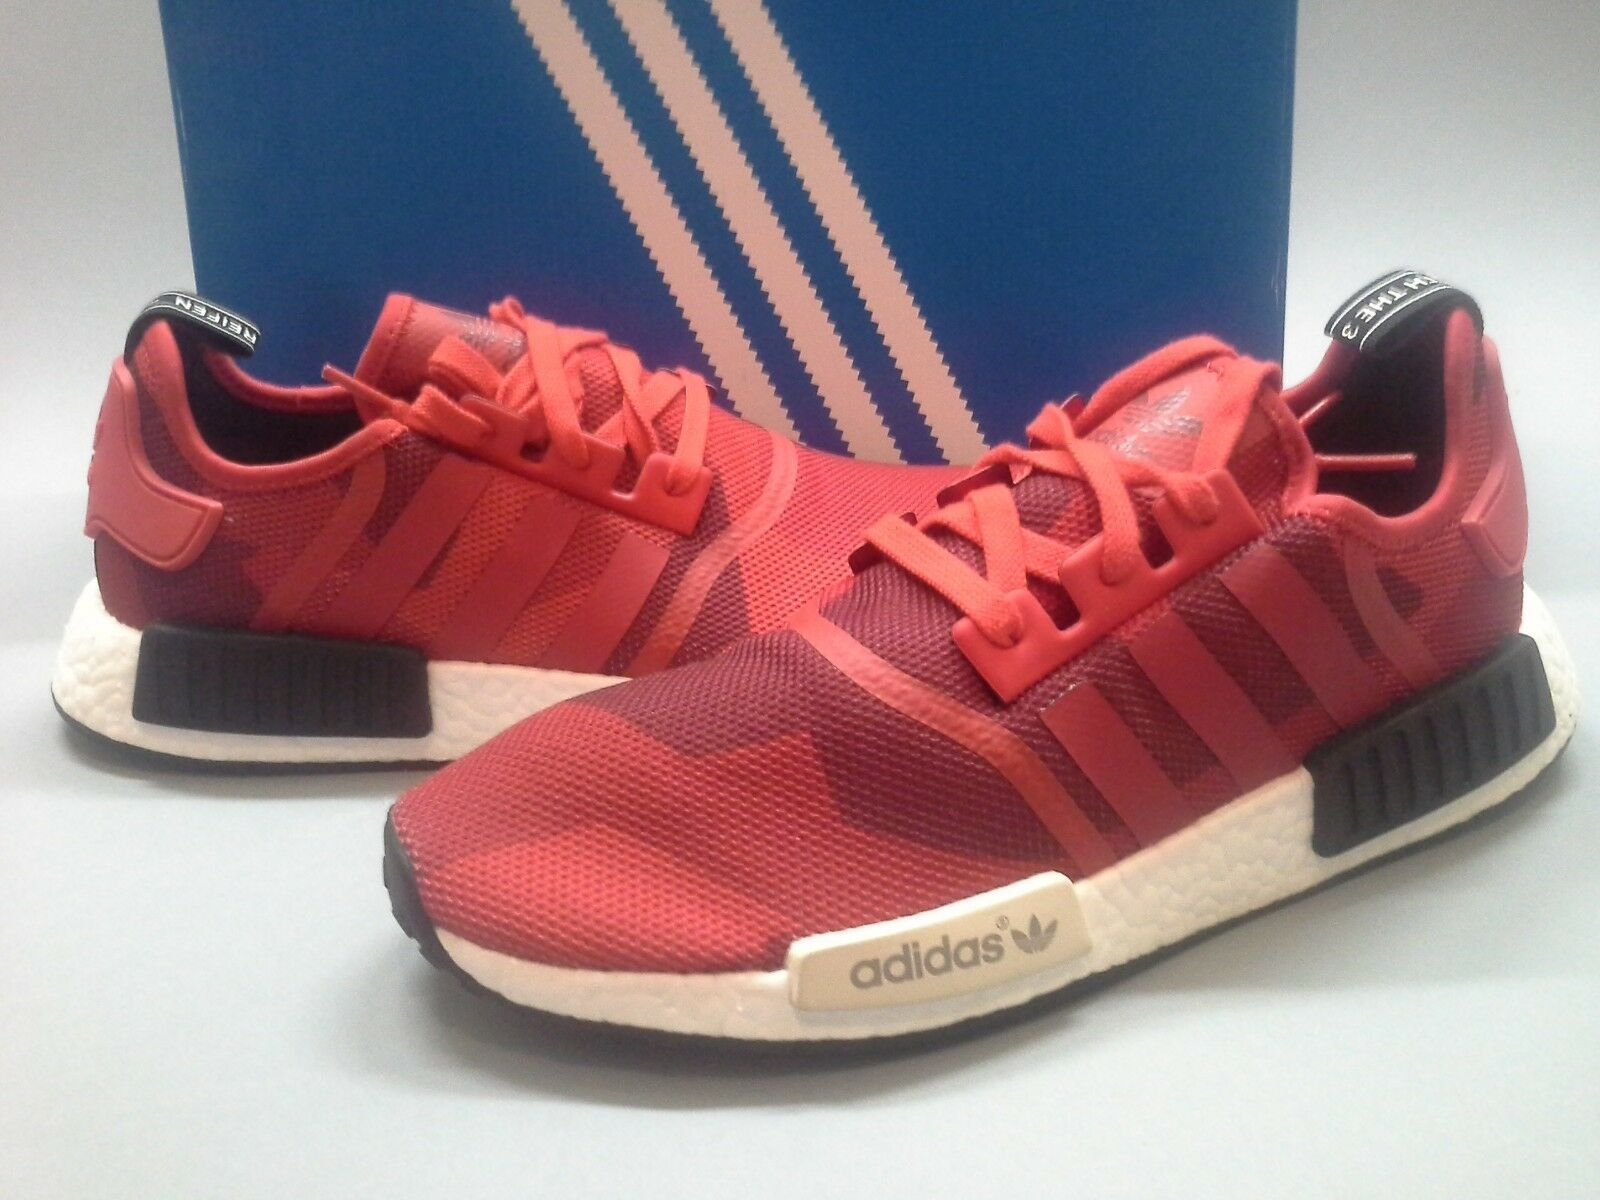 Size 12 New Adidas NMD Geometric Red Camo S79164 Nomad Runner NMD_R1 PK Triple